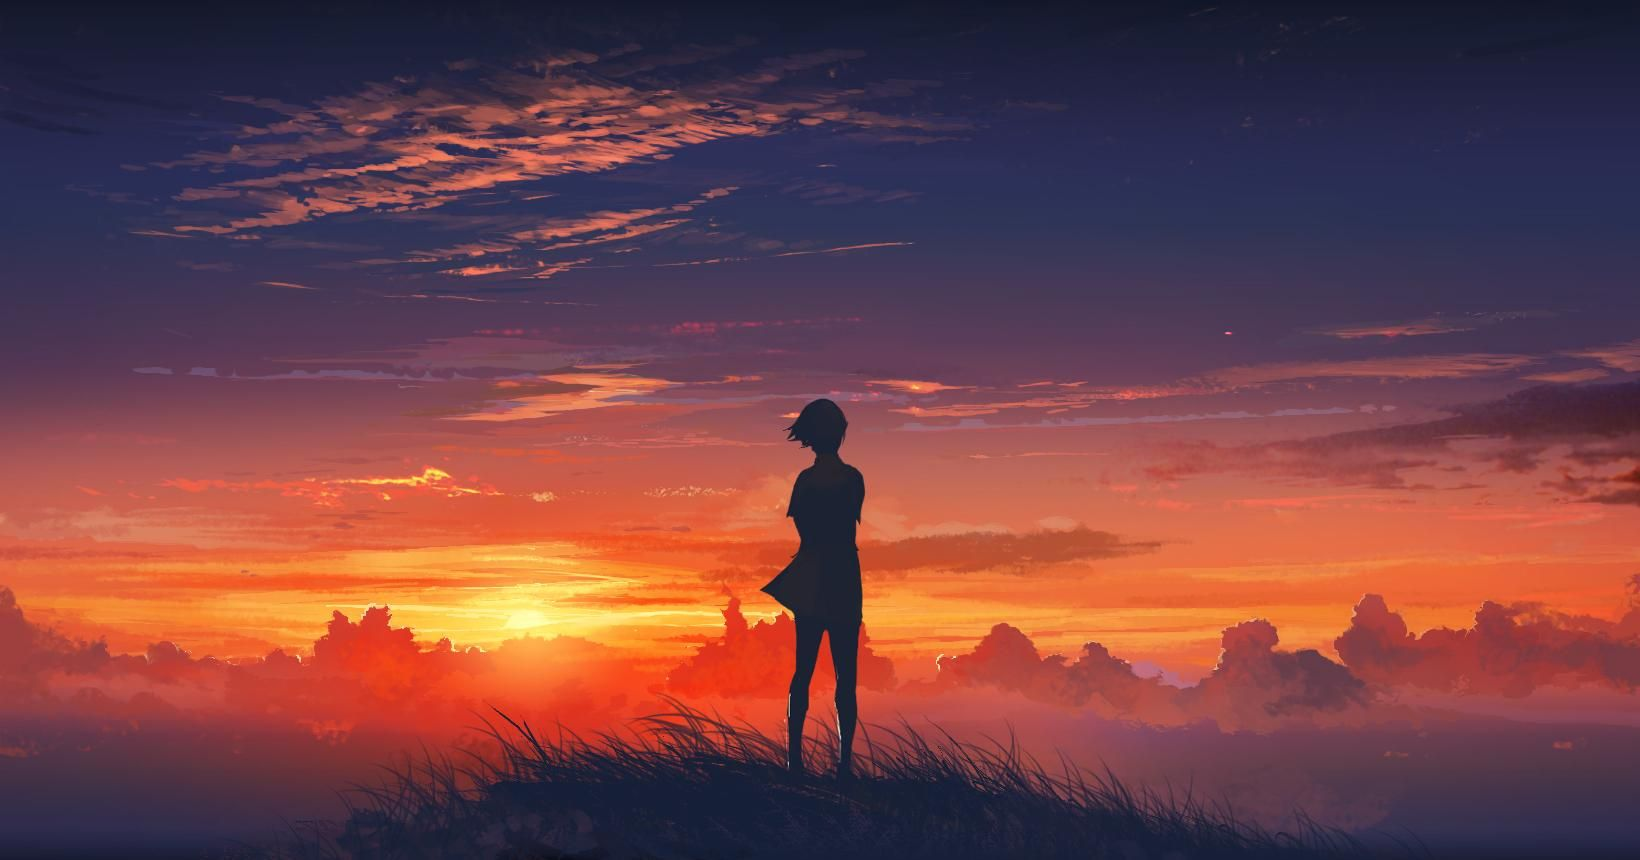 Sunset Anime Beautiful Art Anime Scenery Anime Scenery